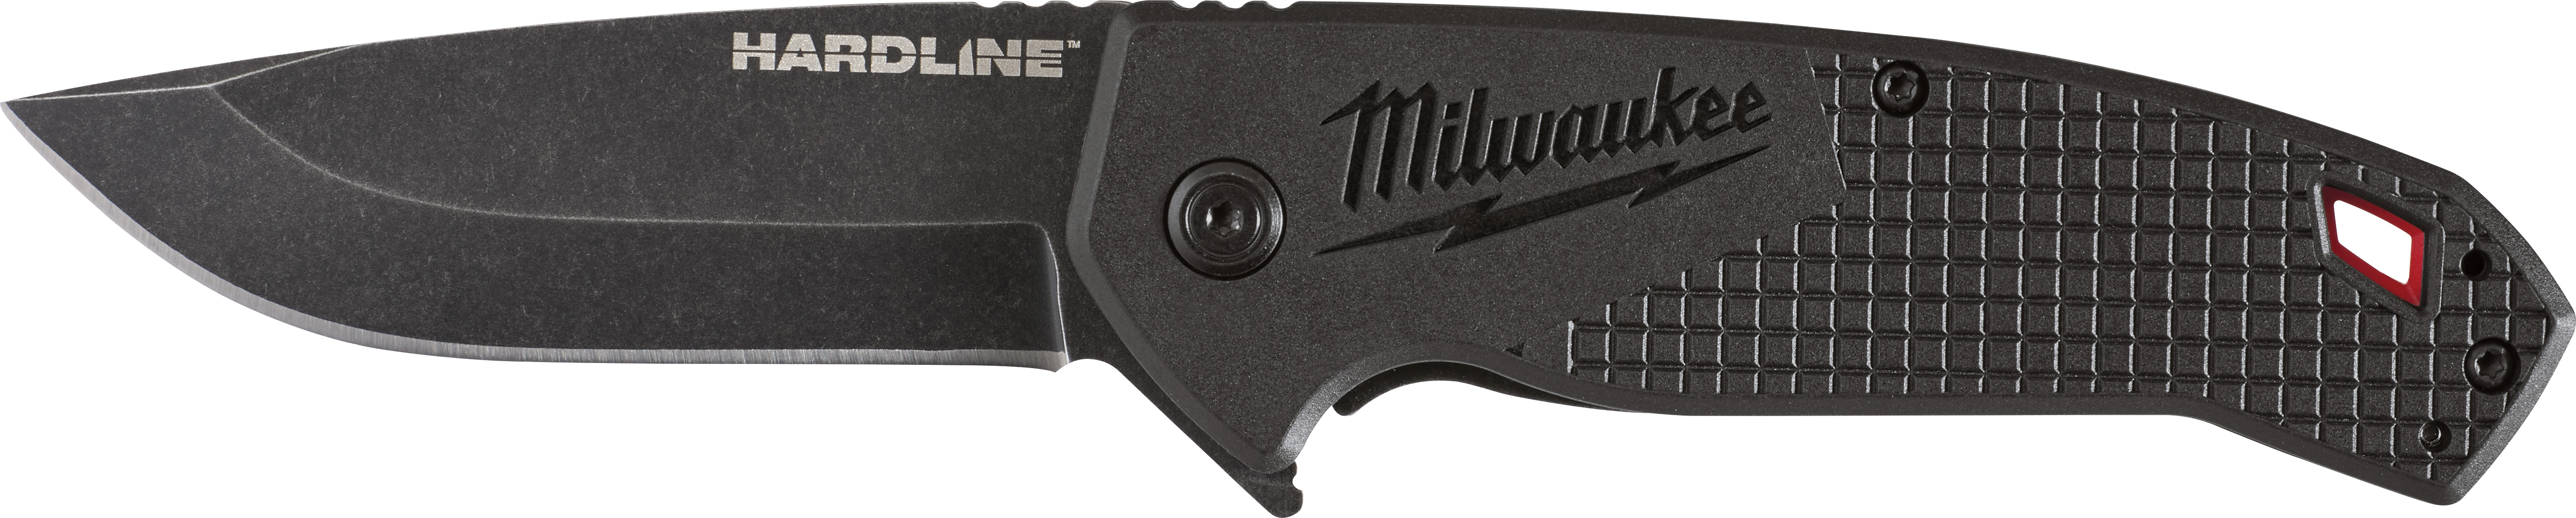 Milwaukee® HARDLINE™ 48-22-1994B Boxed Pocket Knife, D2 Steel Drop Point Smooth Blade, 3 in L Blade, Stainless Steel Grip